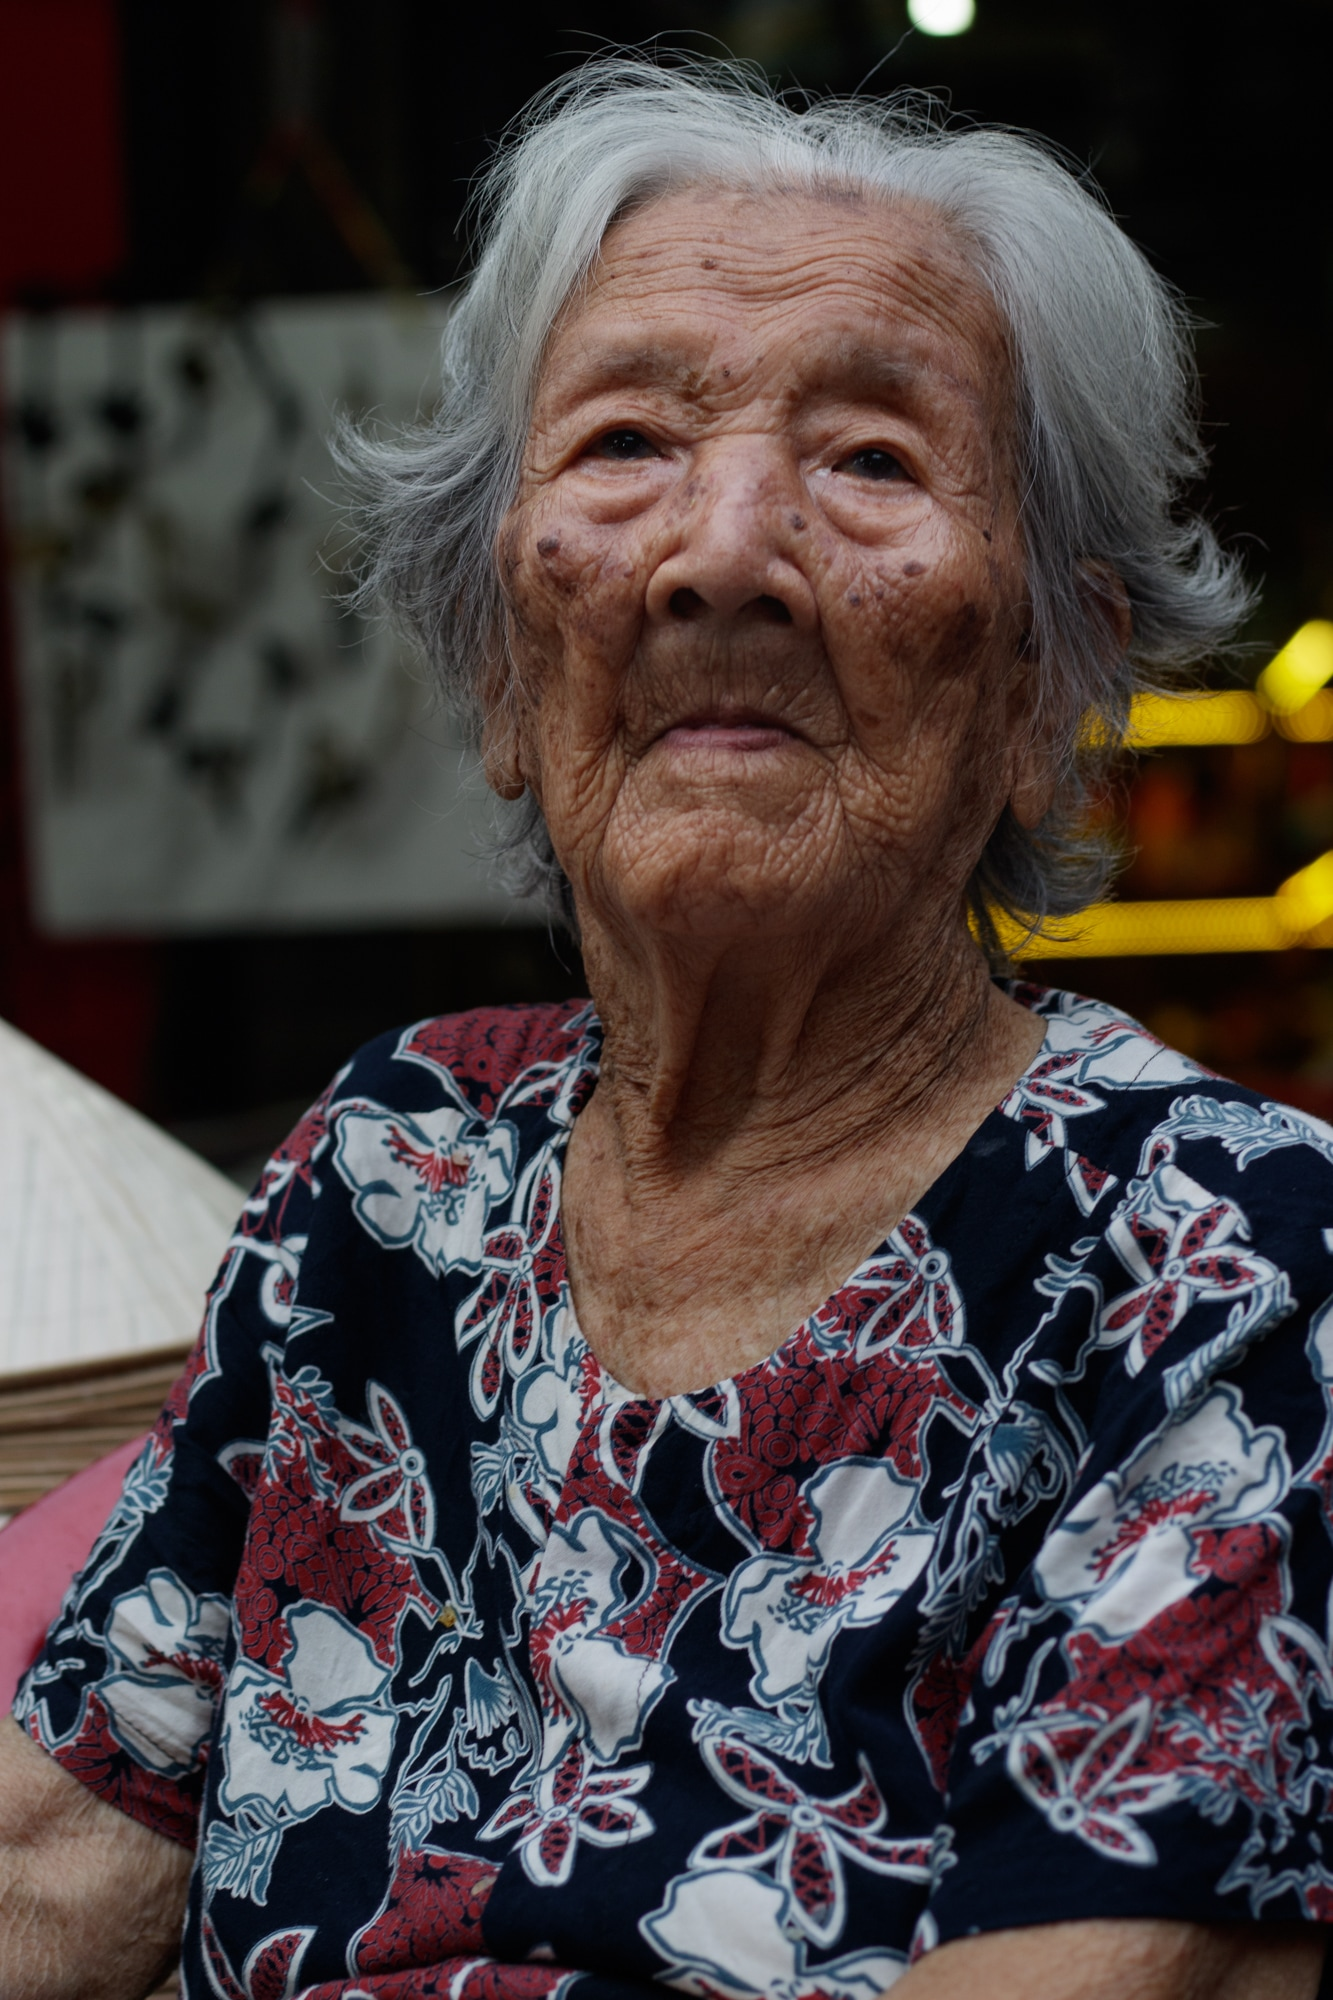 A 102-year-old woman photographed in Hoi An - 2018.